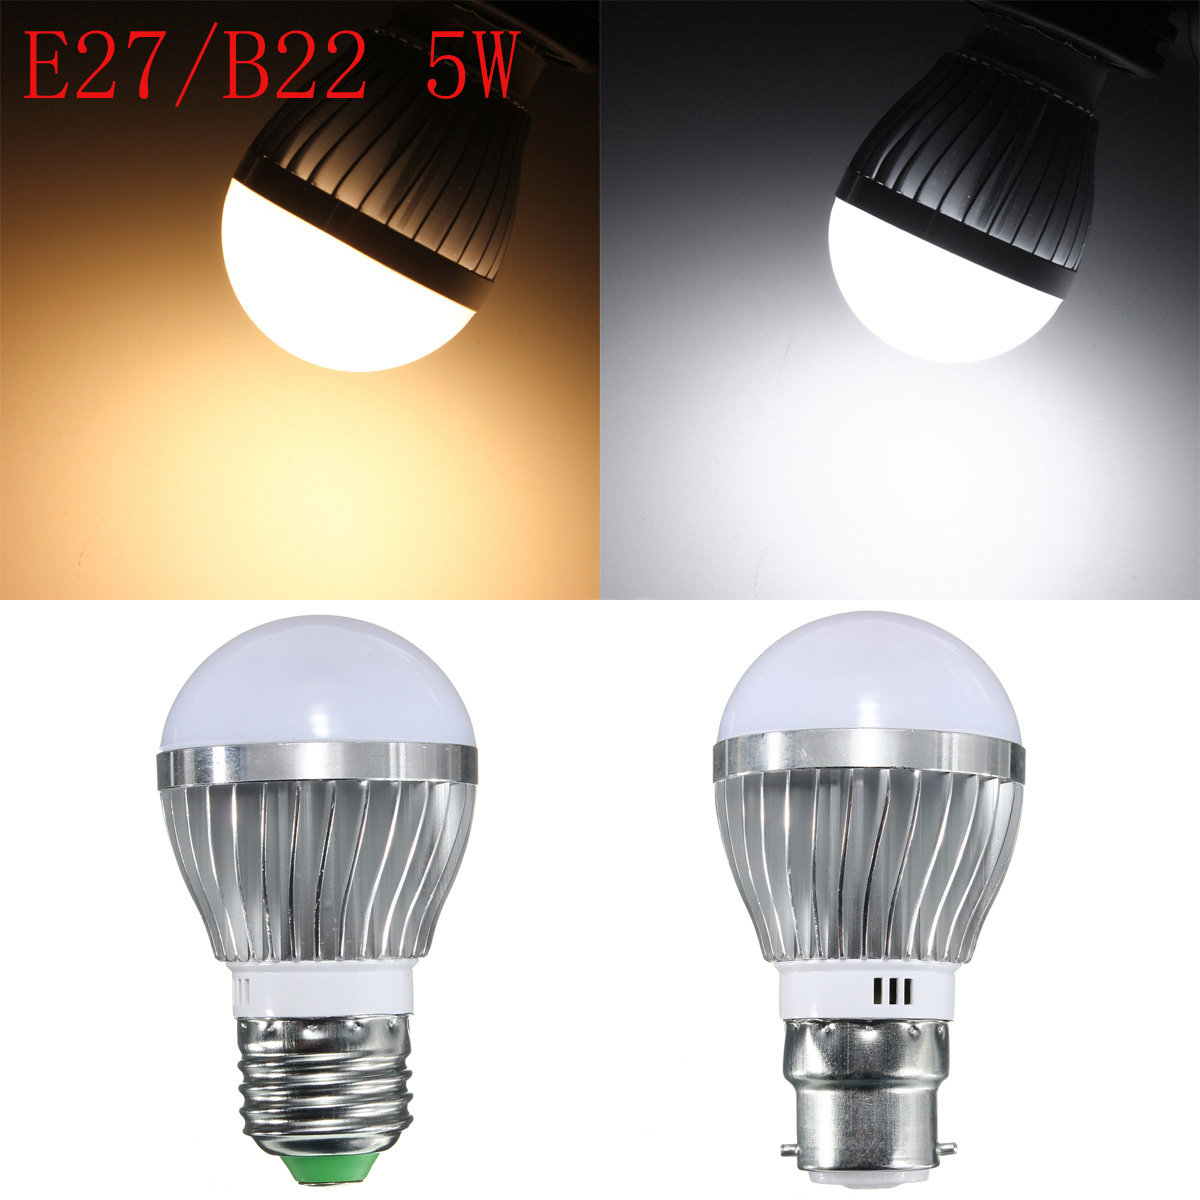 E27 B22 5W Dimmable 6 SMD5730  LED Bayonet Edison Bulb Lamp Globe Light Warm White AC 110-240V